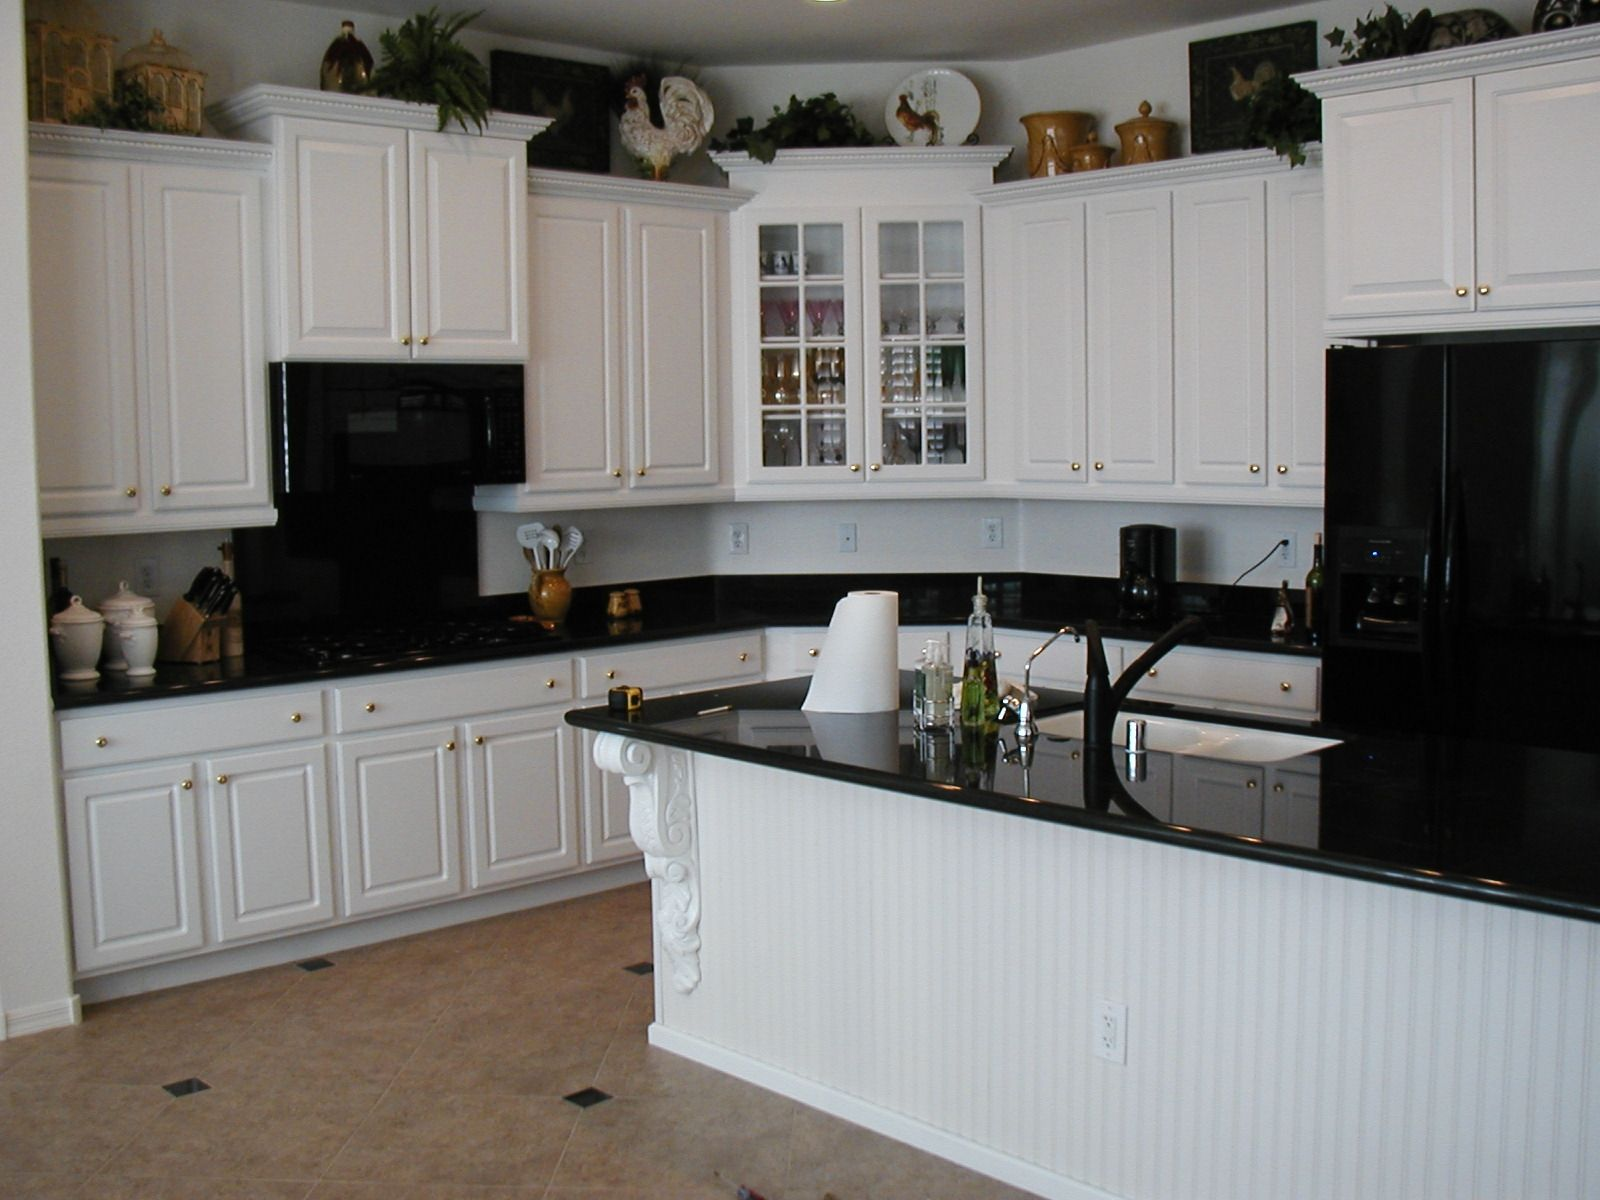 White Kitchen Cabinets With Black Countertops Photos Of White Kitchens With Black Appliances And Black Model